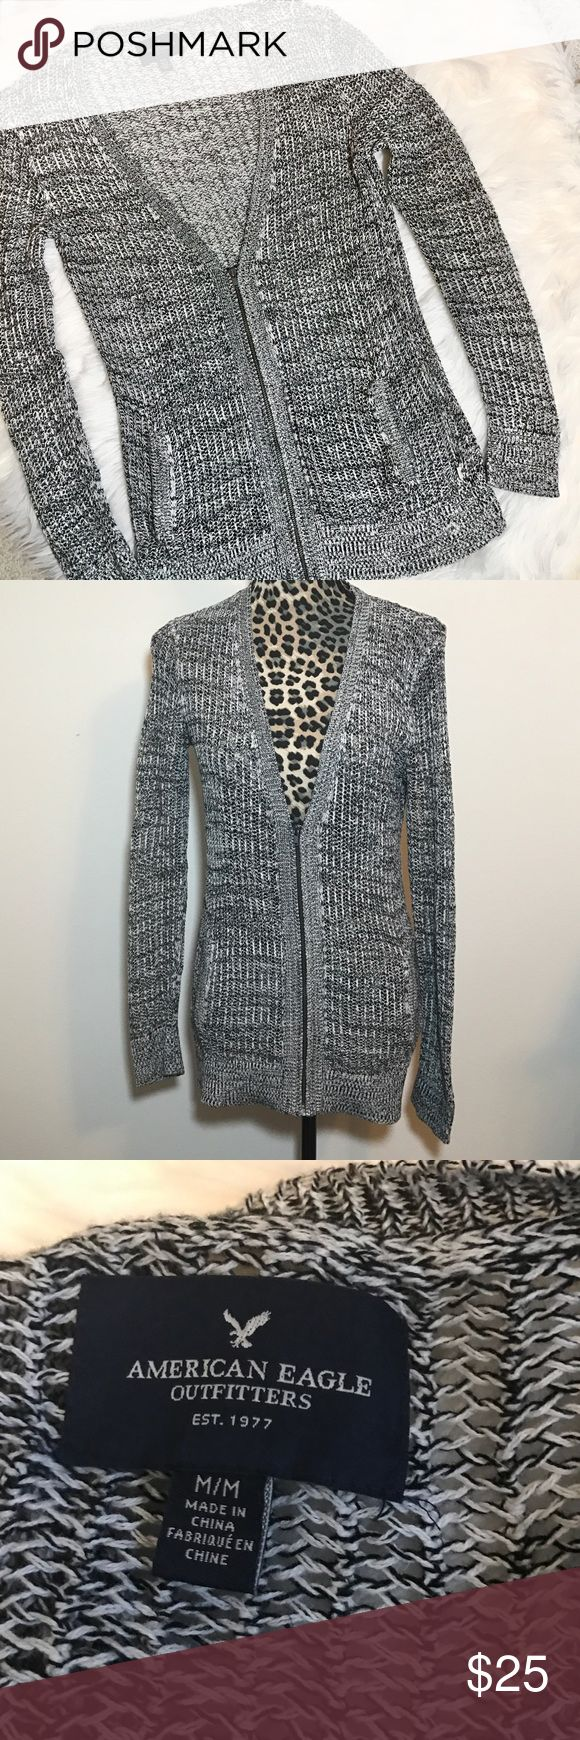 """🔸SALE🔸American Eagle waffle knit zipper Cardigan This is new without tag!  Still has the size sticker on it!  100% Cotton. Black and white knit. Zips about half way. Pockets. 29"""" length. 19"""" bust laying flat. Check out the TOP of my Closet for Current SALES! American Eagle Outfitters Sweaters Cardigans"""